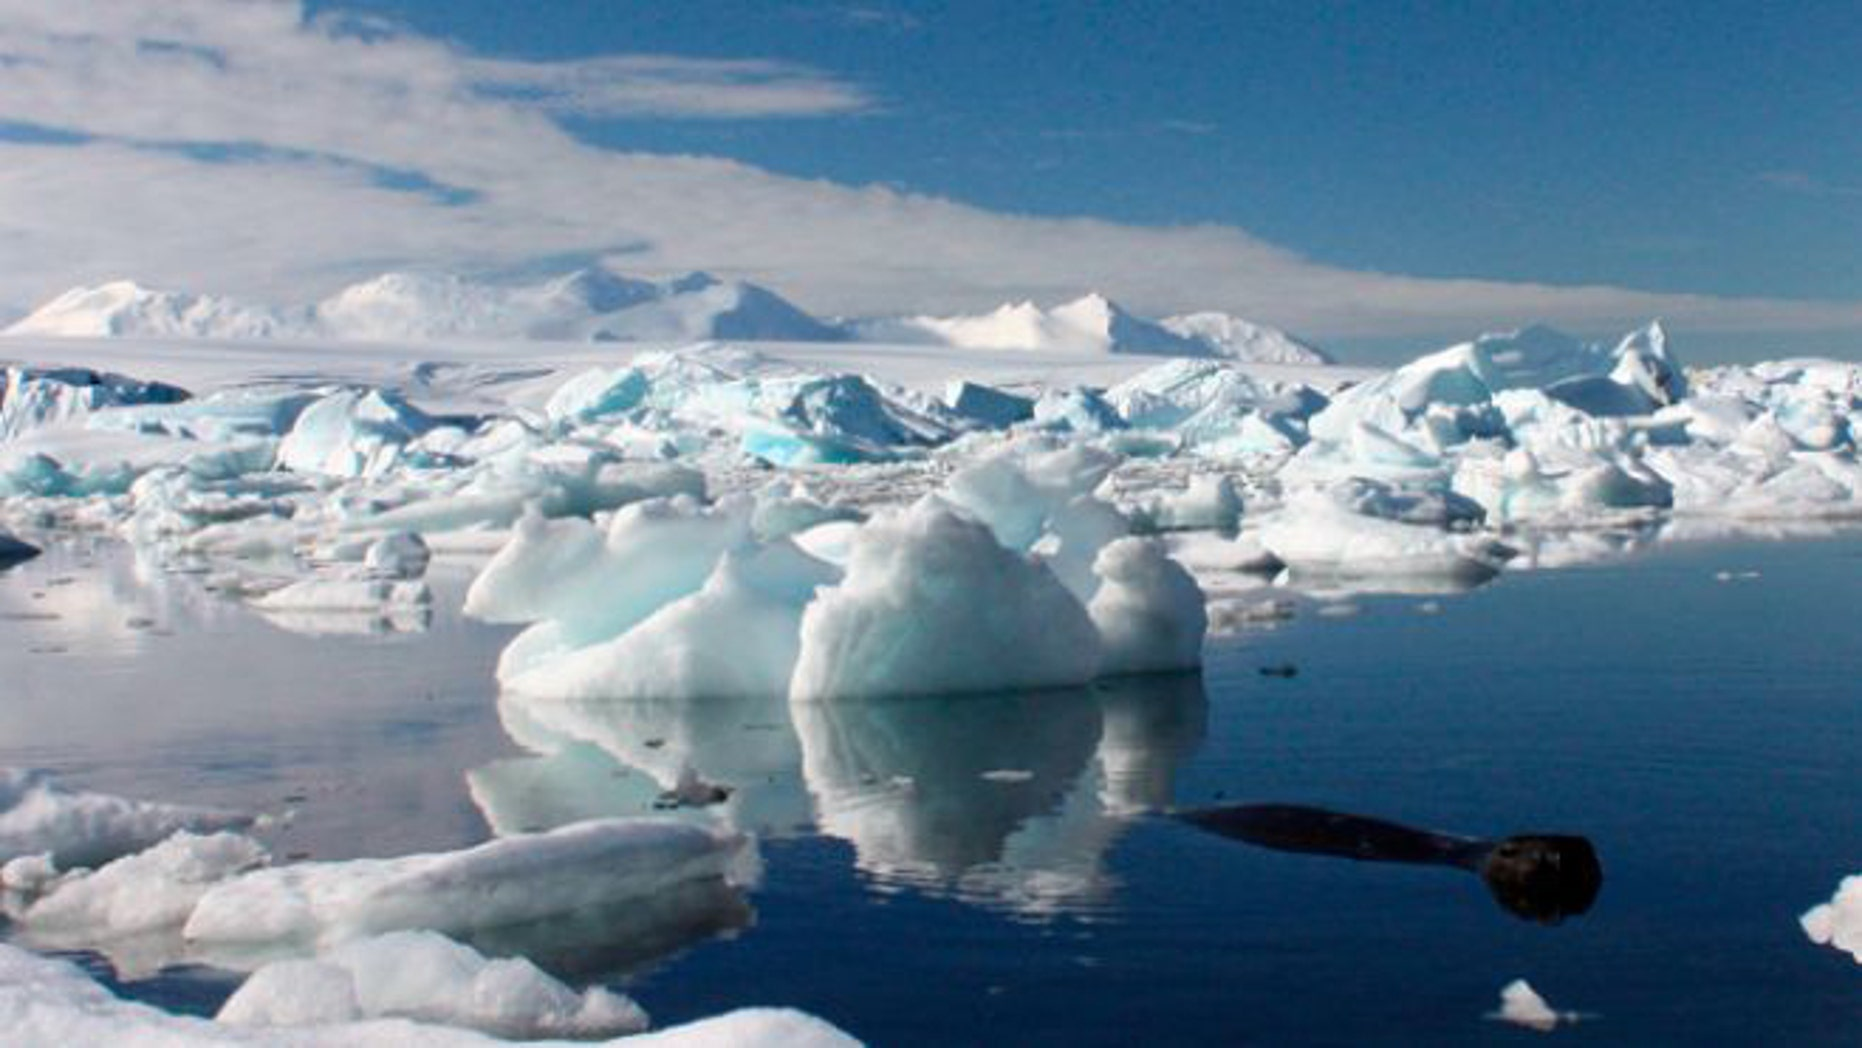 Antarctic scientists successfully reached Mercer Subglacial Lake on December 26th.